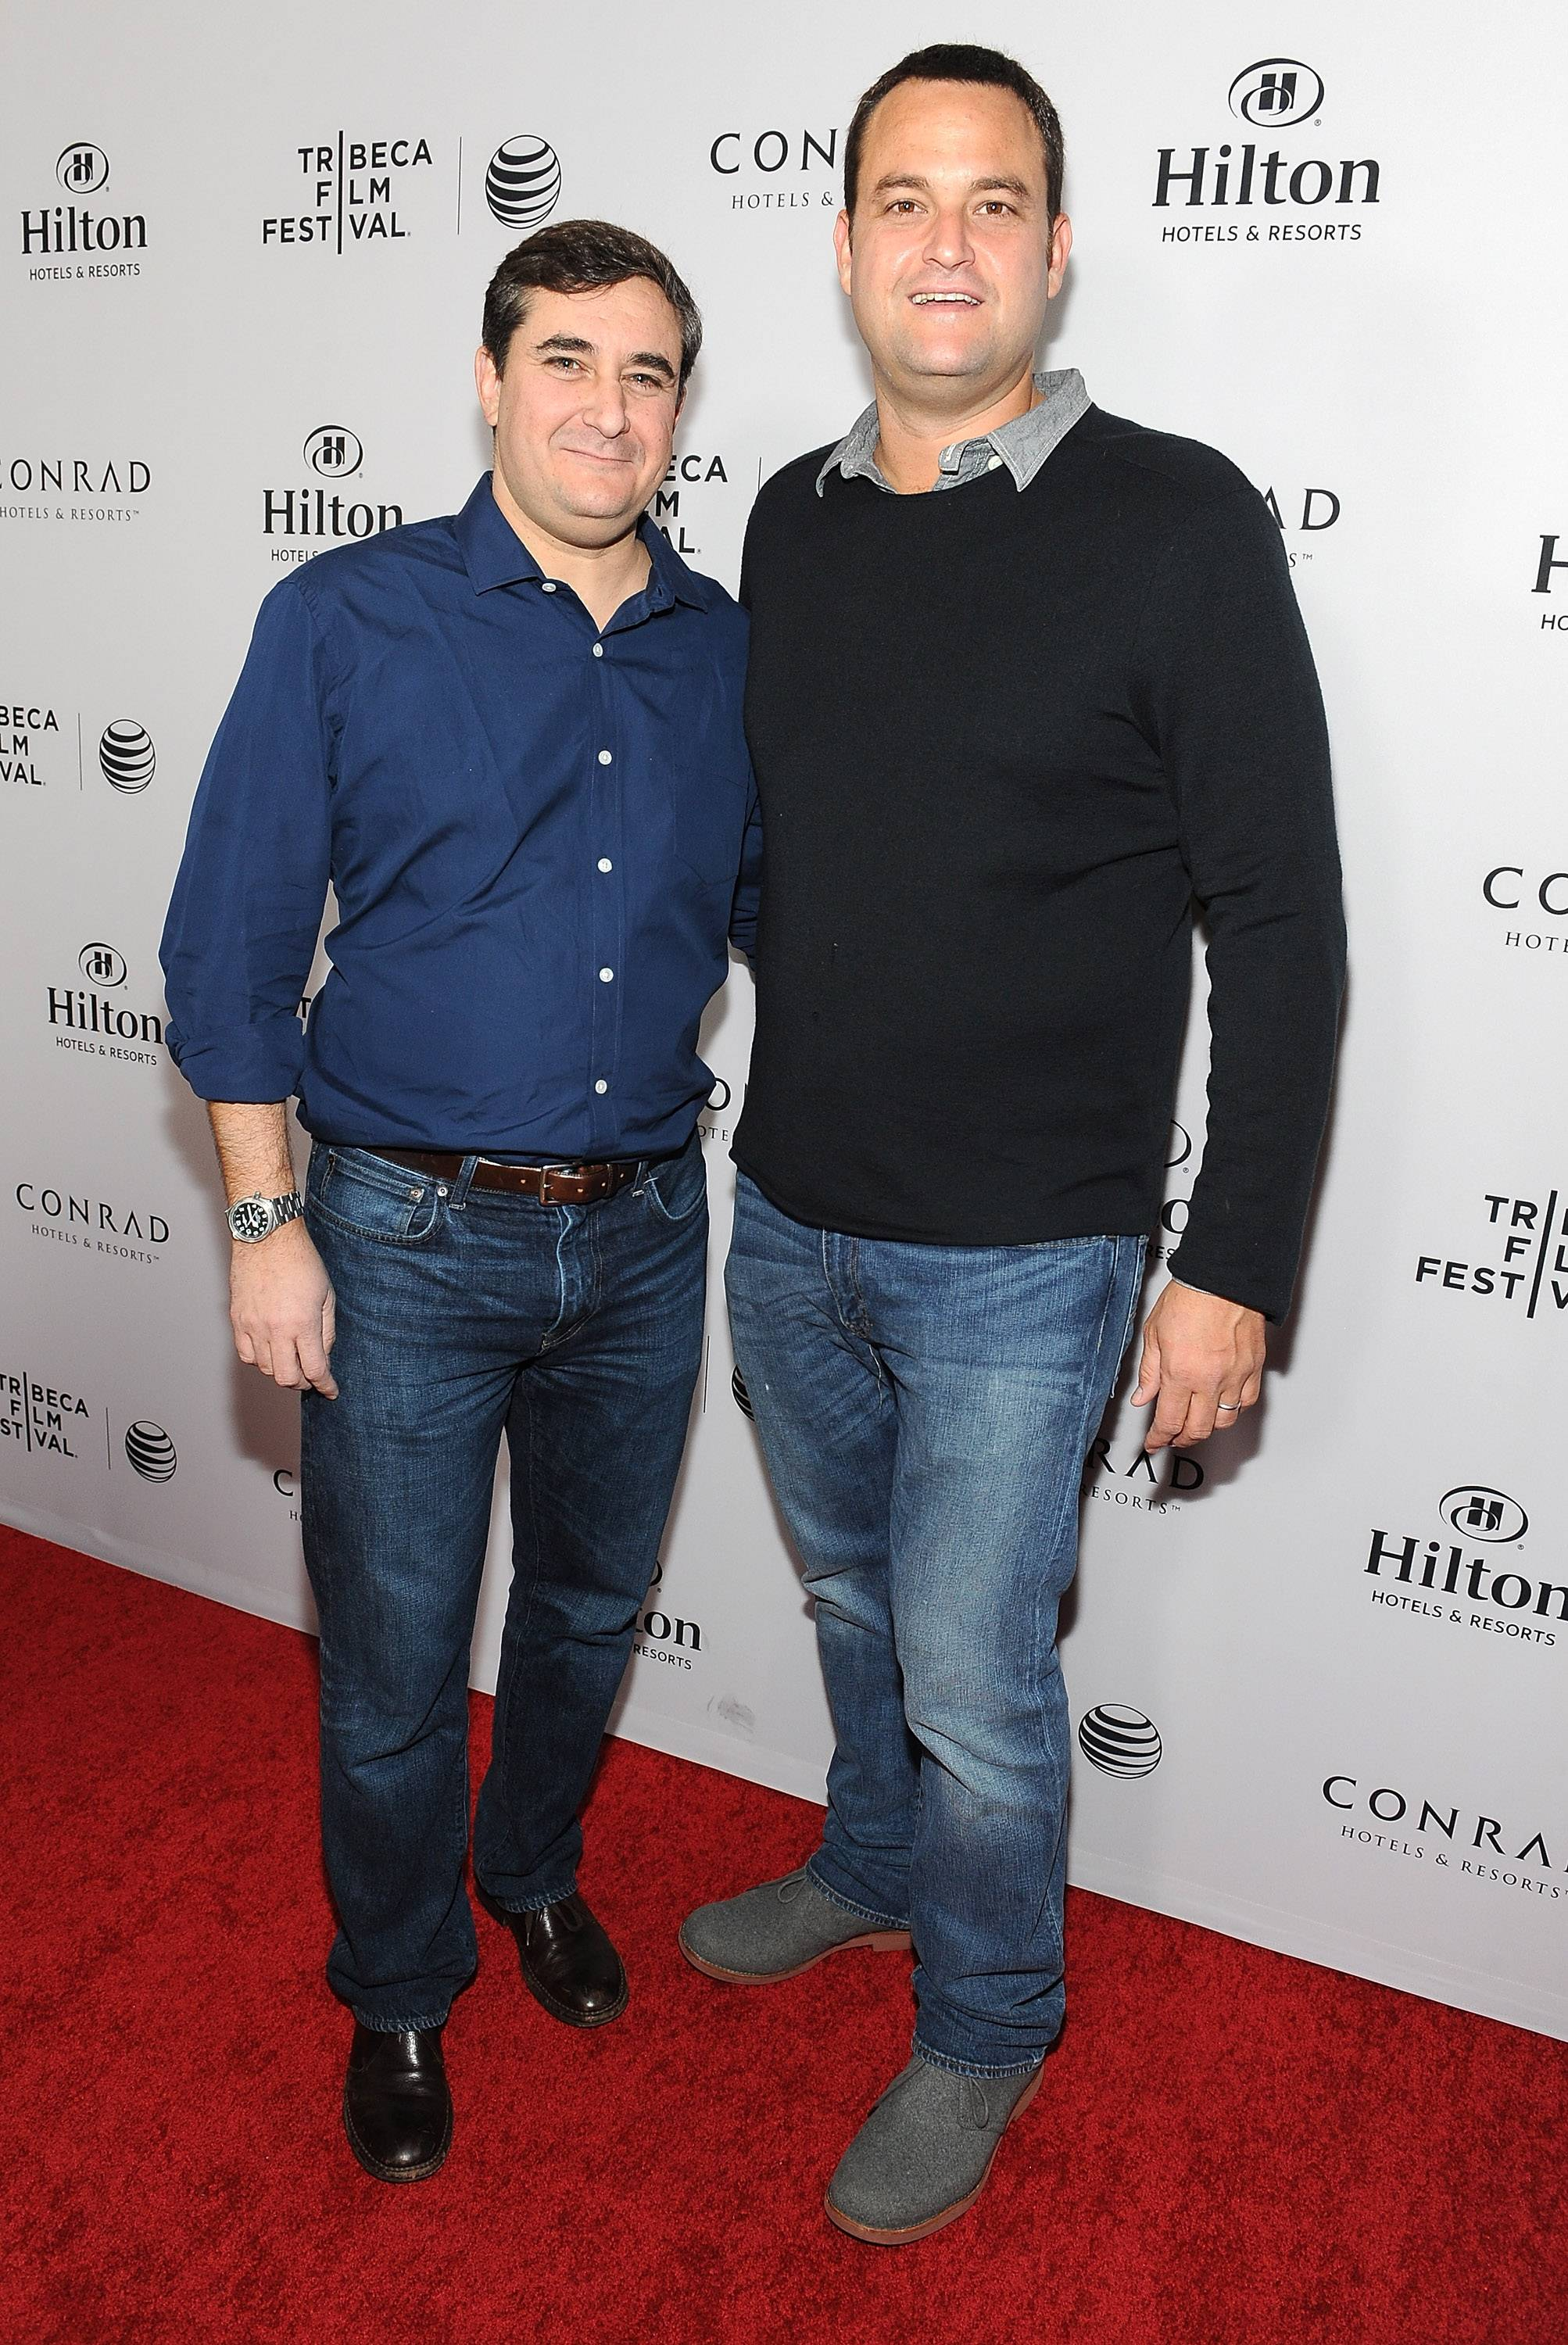 2014 Tribeca Film Festival LA Kickoff Reception At The Beverly Hilton